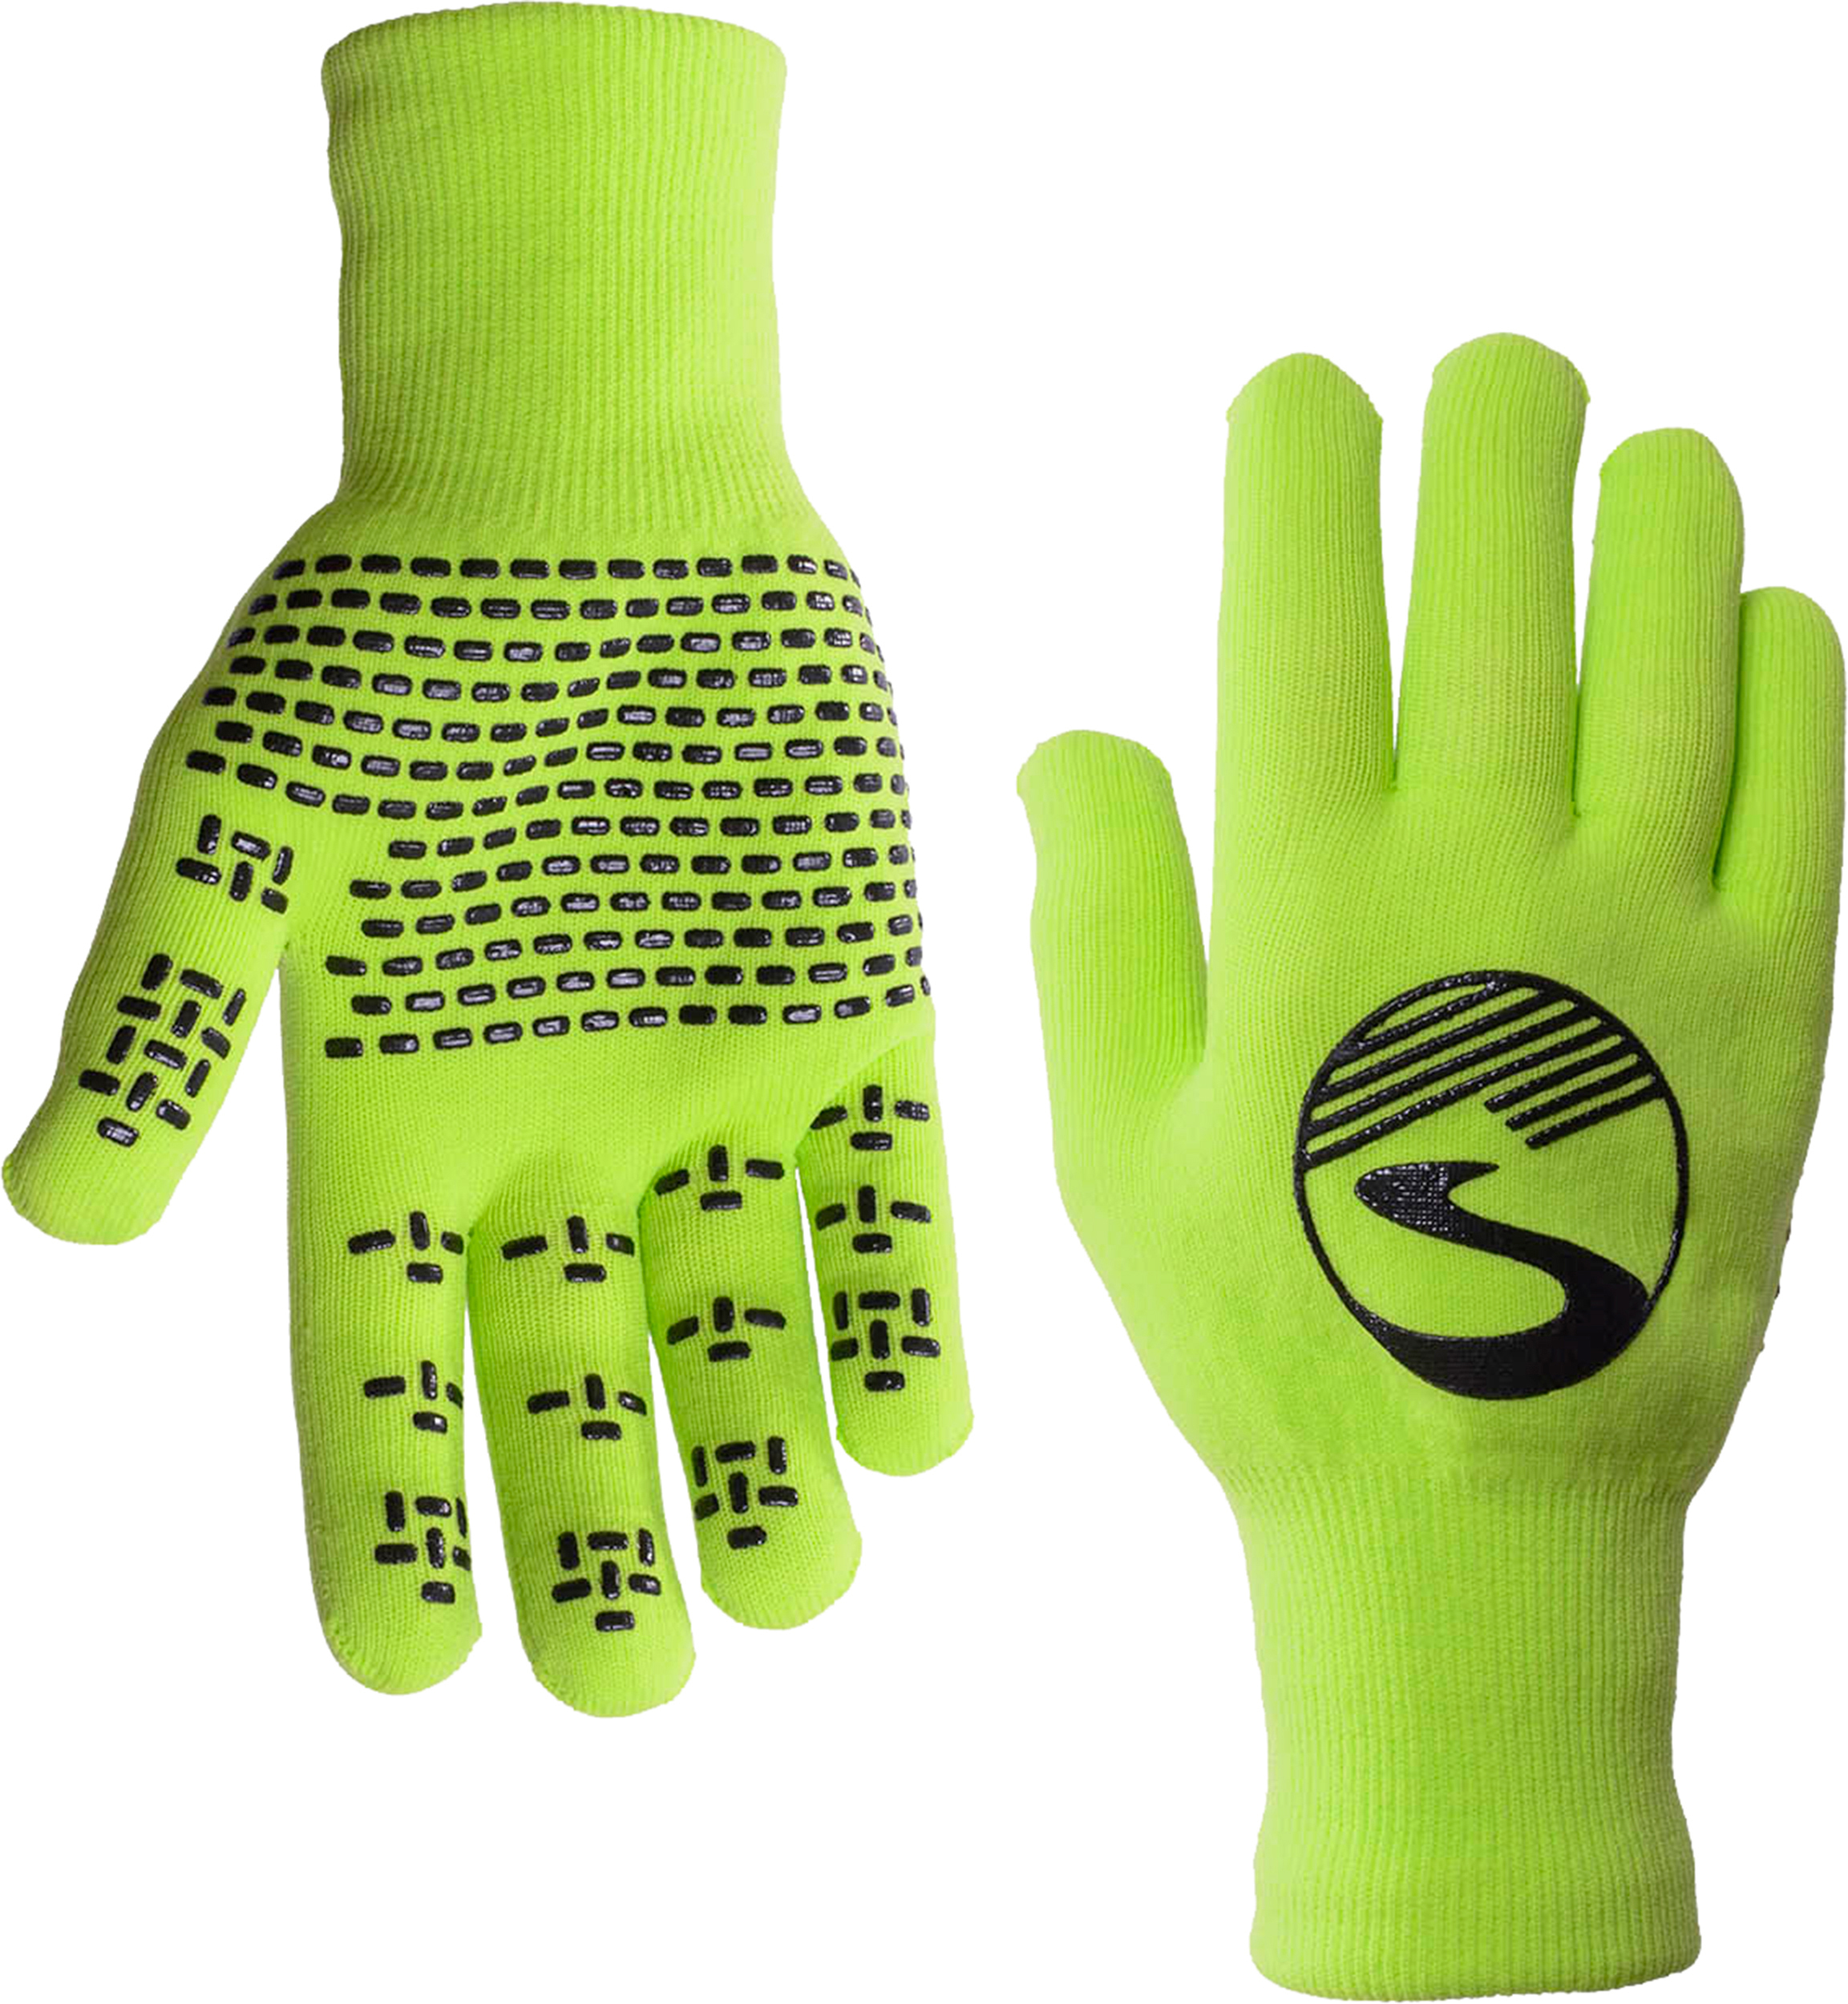 in Black Showers Pass Crosspoint Waterproof Knit Cycling Gloves